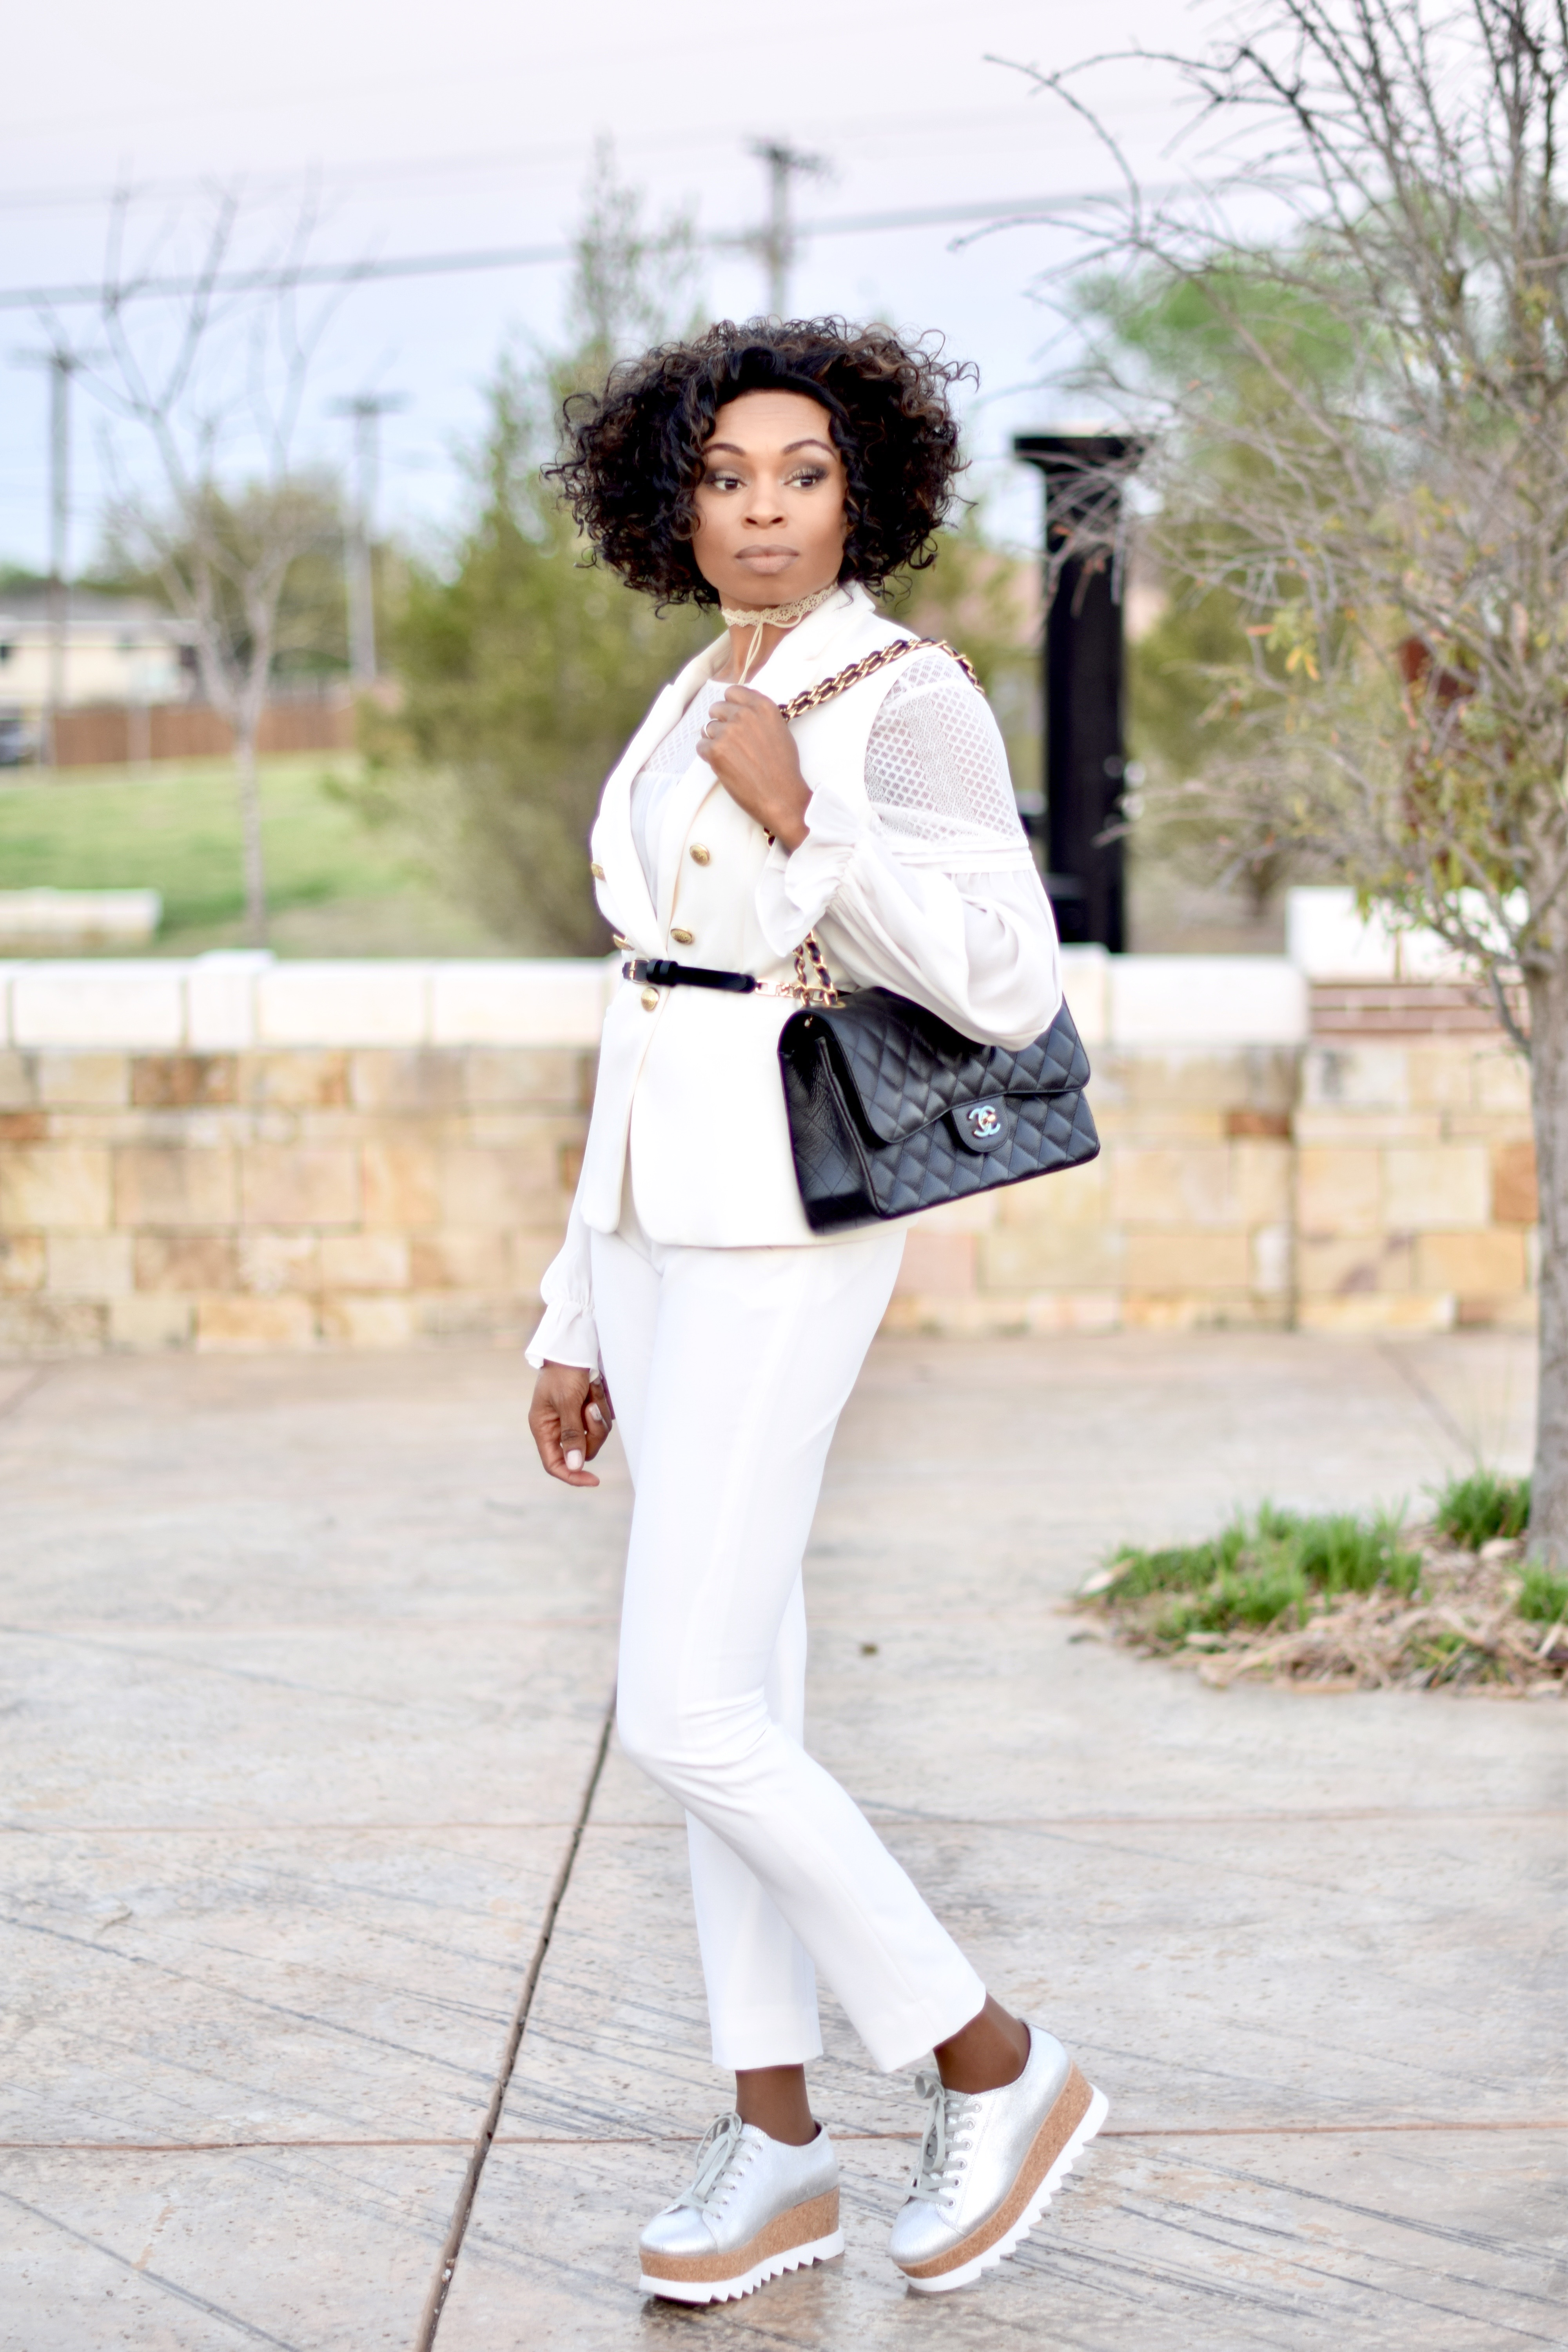 Platform Sneakers-updated styling tips posted by Vivellefashion